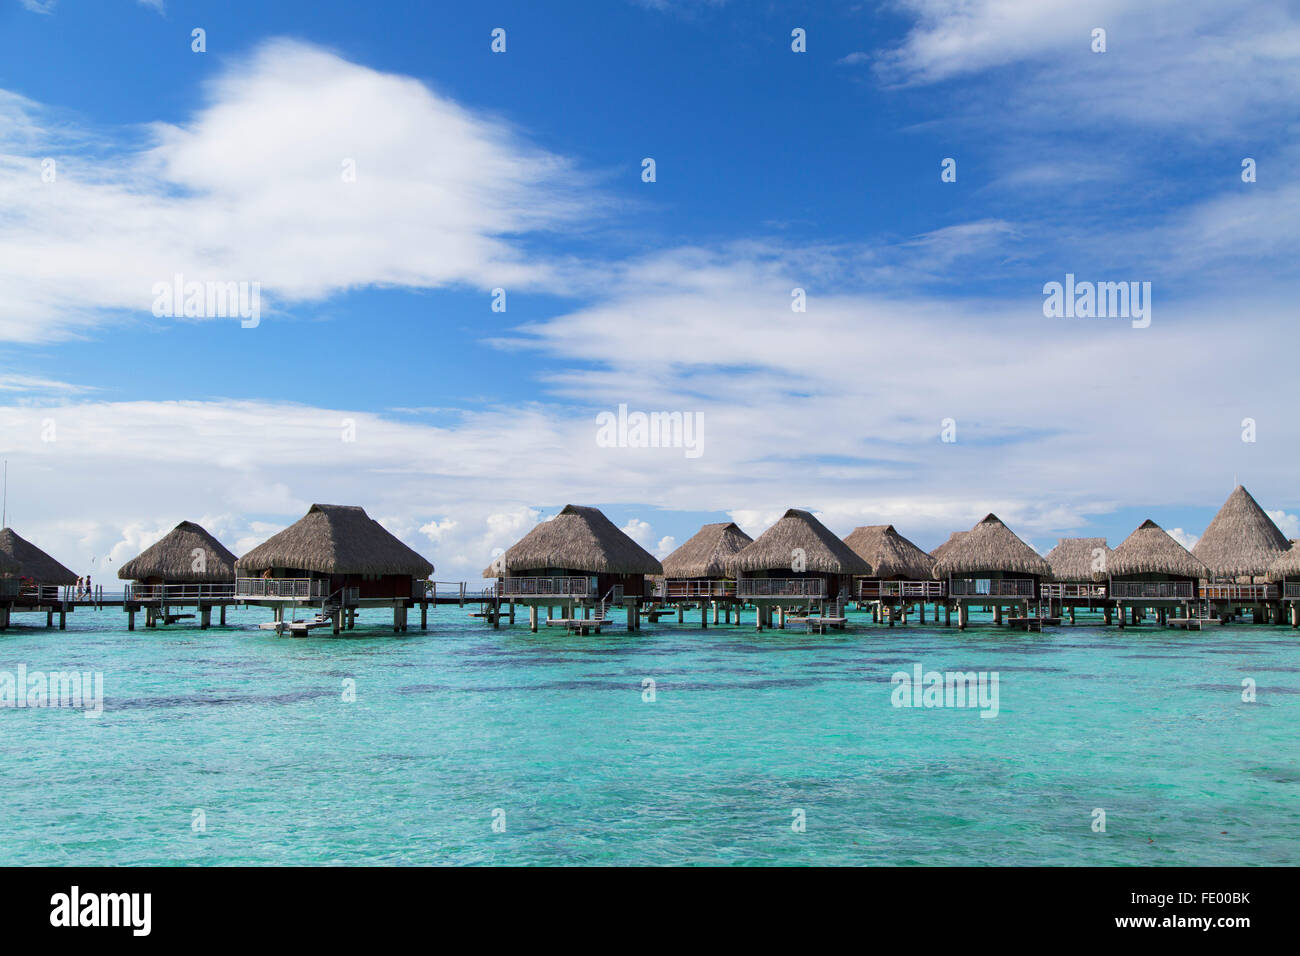 Overwater bungalows of Hilton Mo'orea Lagoon Resort Hotel, Moorea, Society Islands, French Polynesia - Stock Image